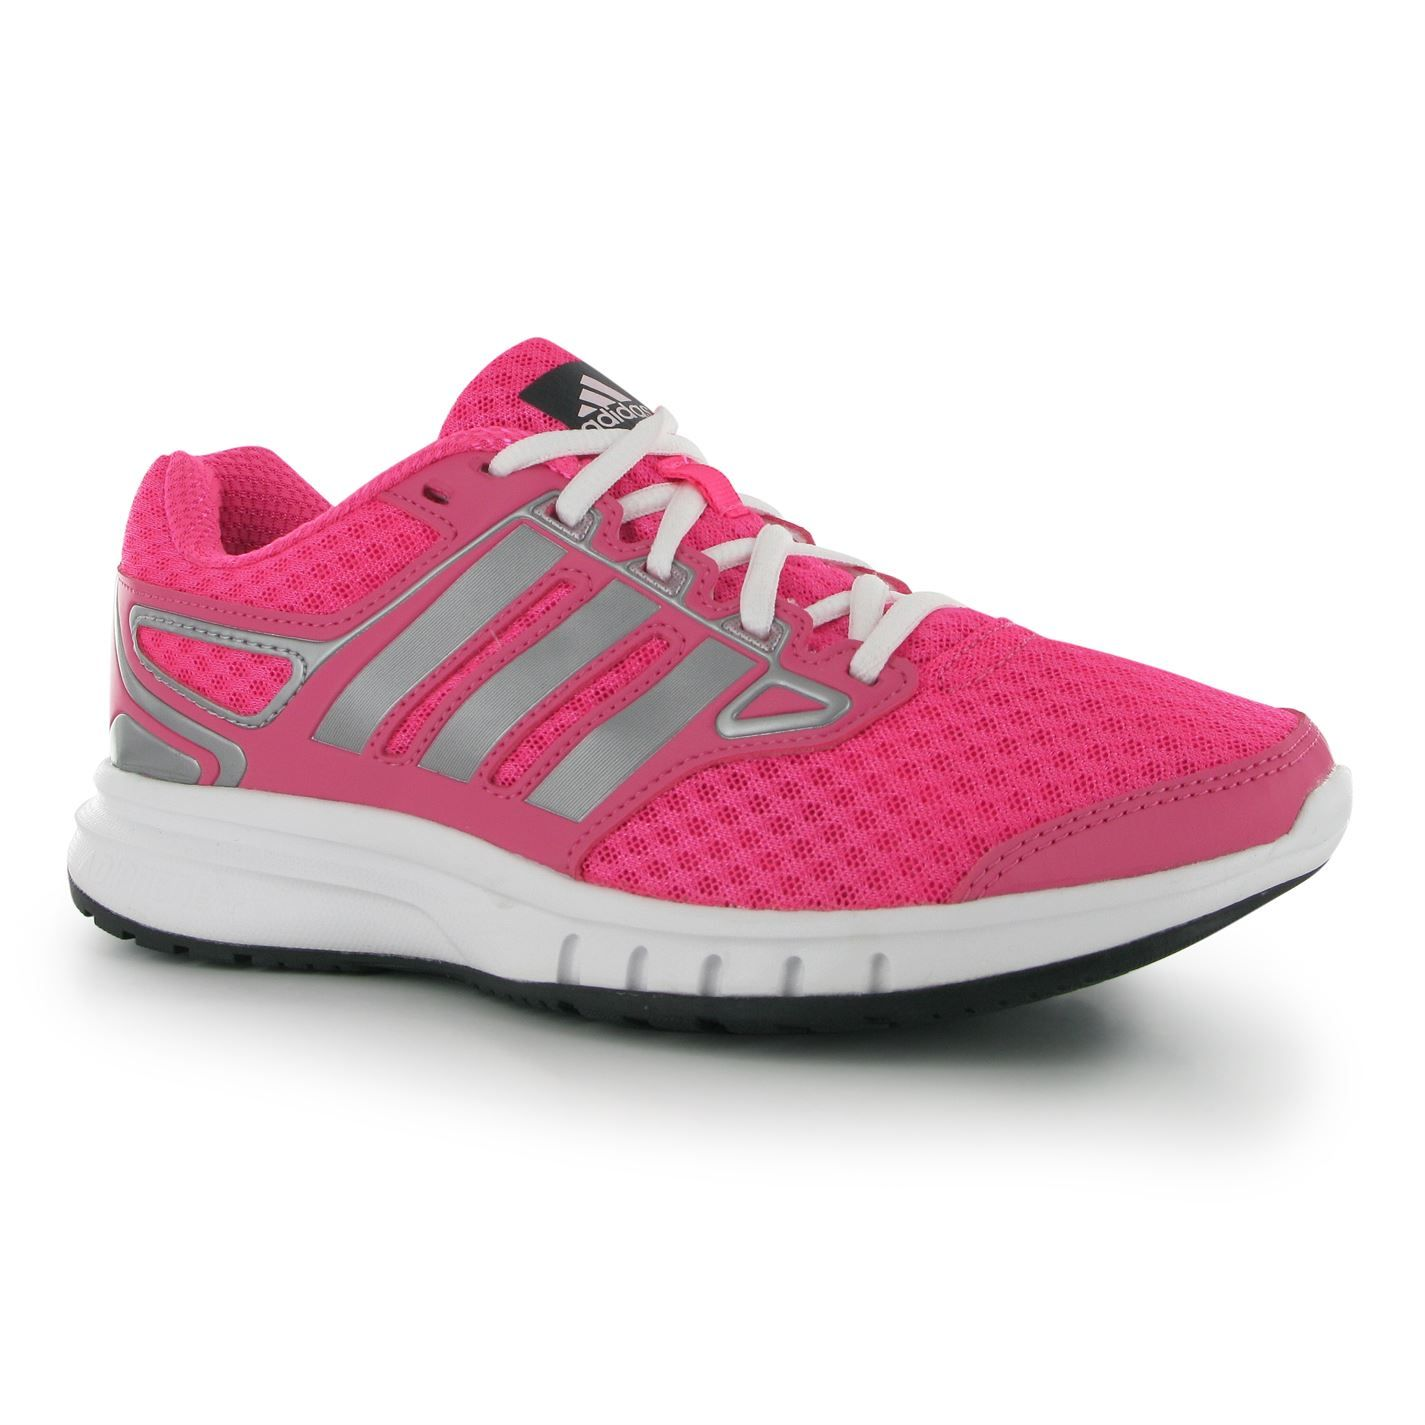 GO RUN! Adidas G60376 Top Quality adidas Ladies AdiPure